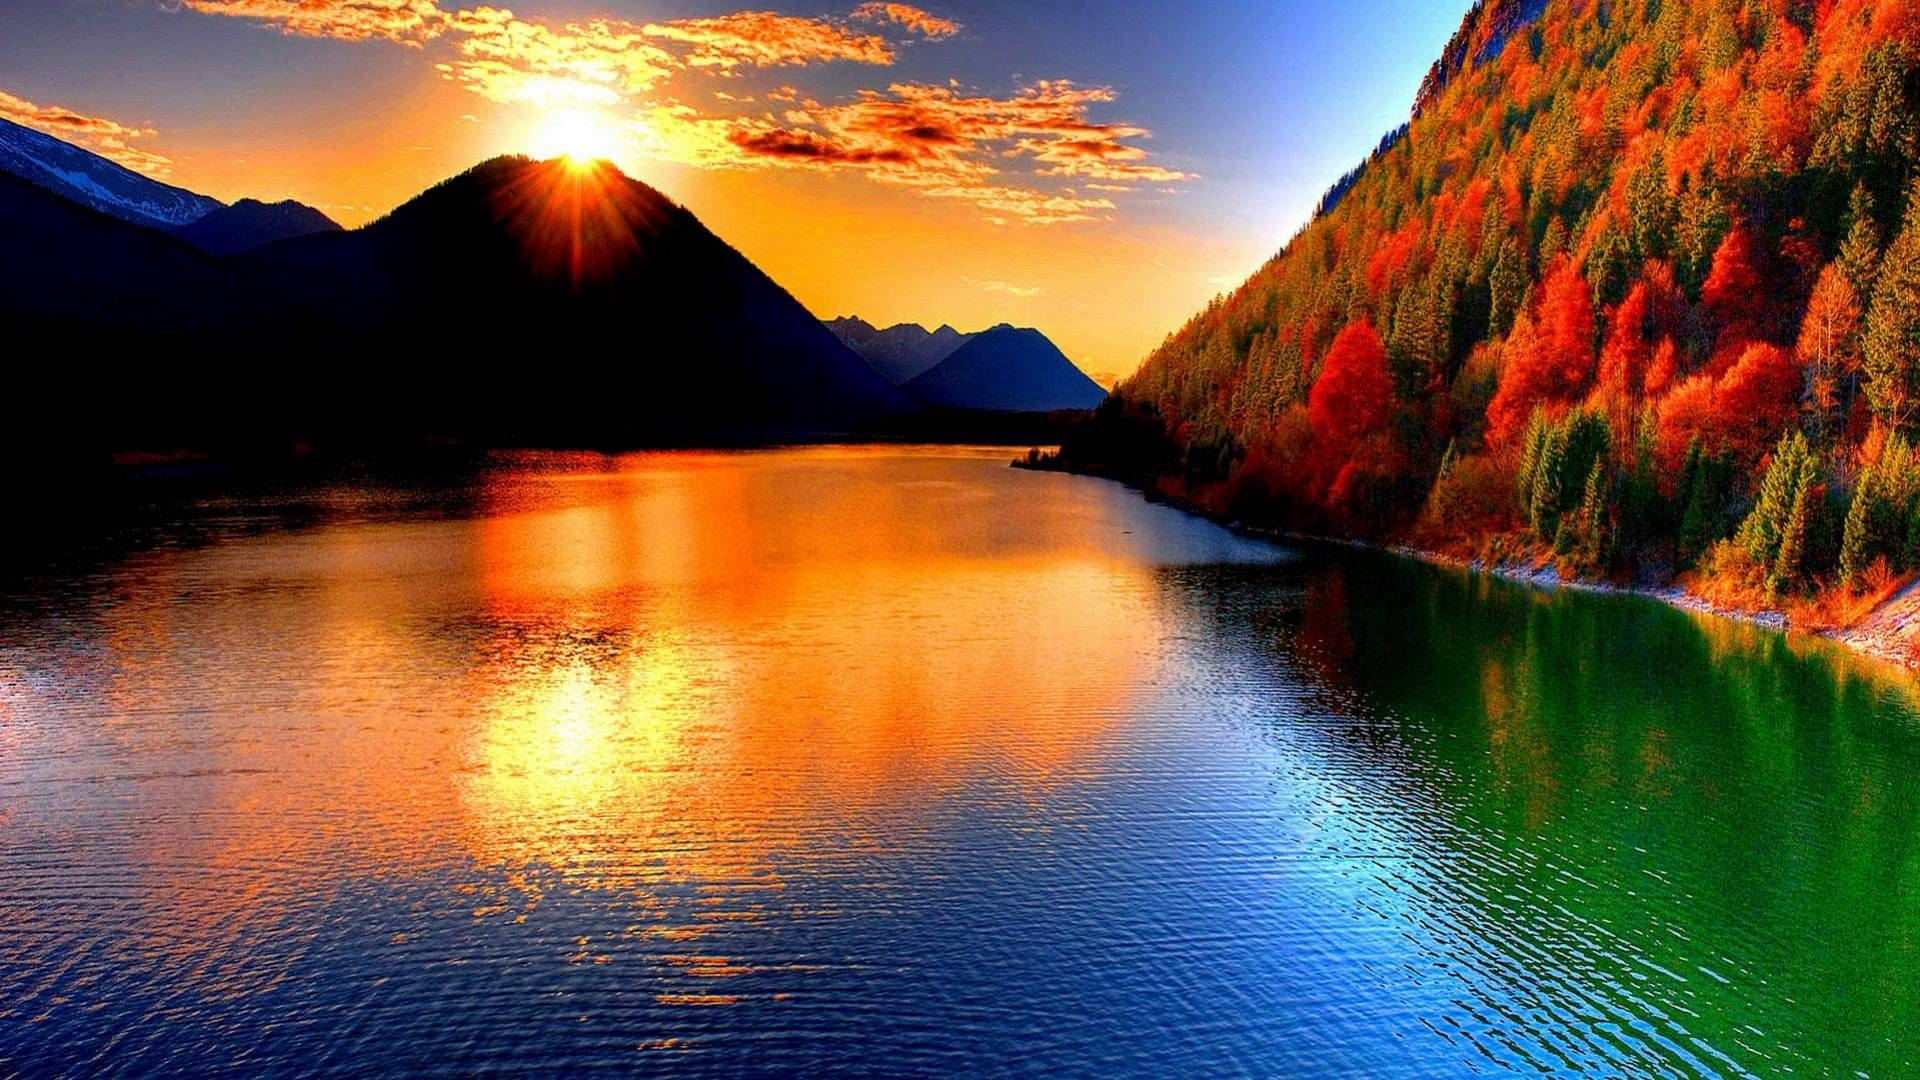 Sun And Earth Amazing Site | ... River In The Foreground And Amazing Autumn